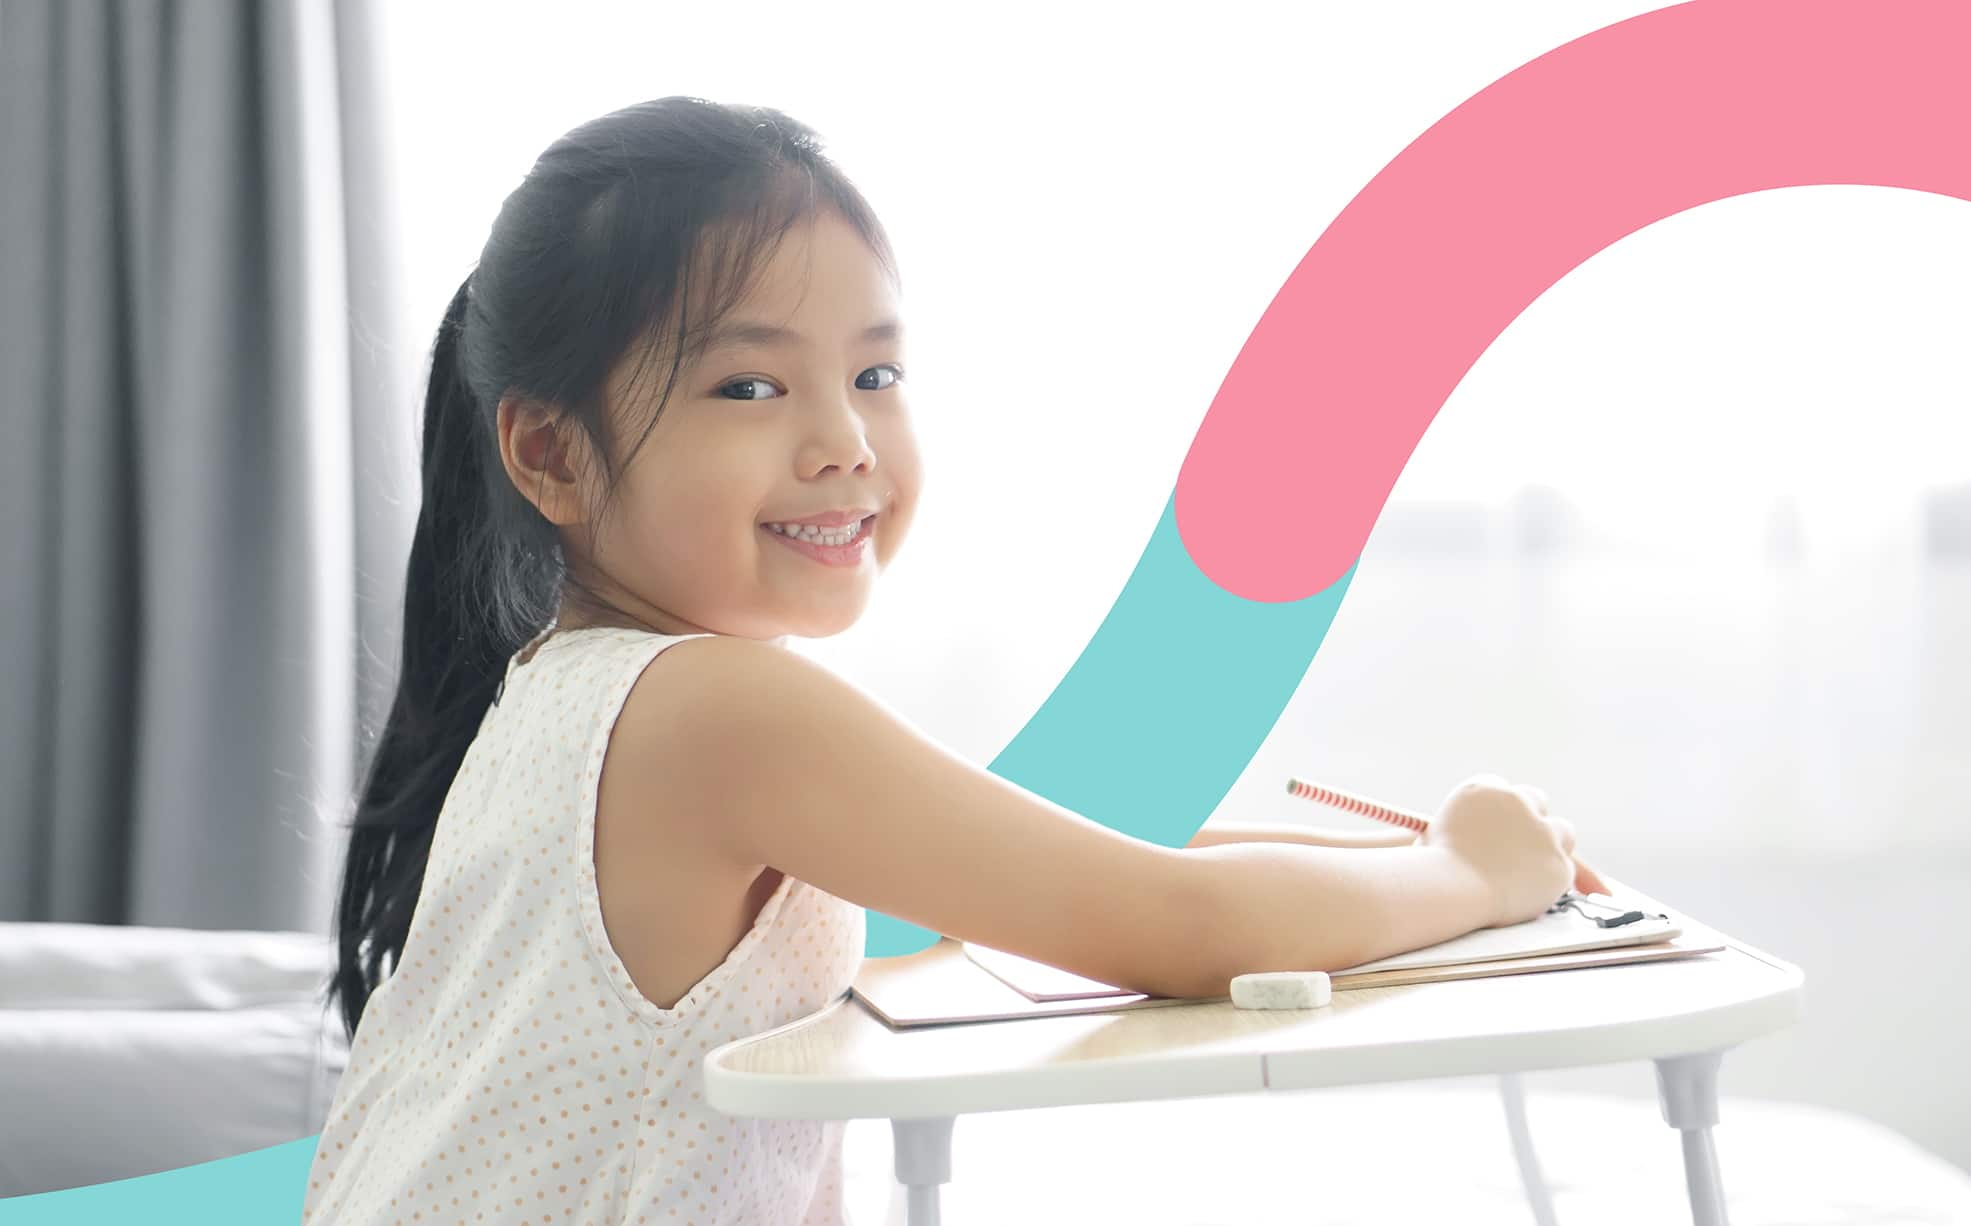 Preparing for PSLE Chinese papers needs not be a stressful experience if a proper preparation strategy is in place